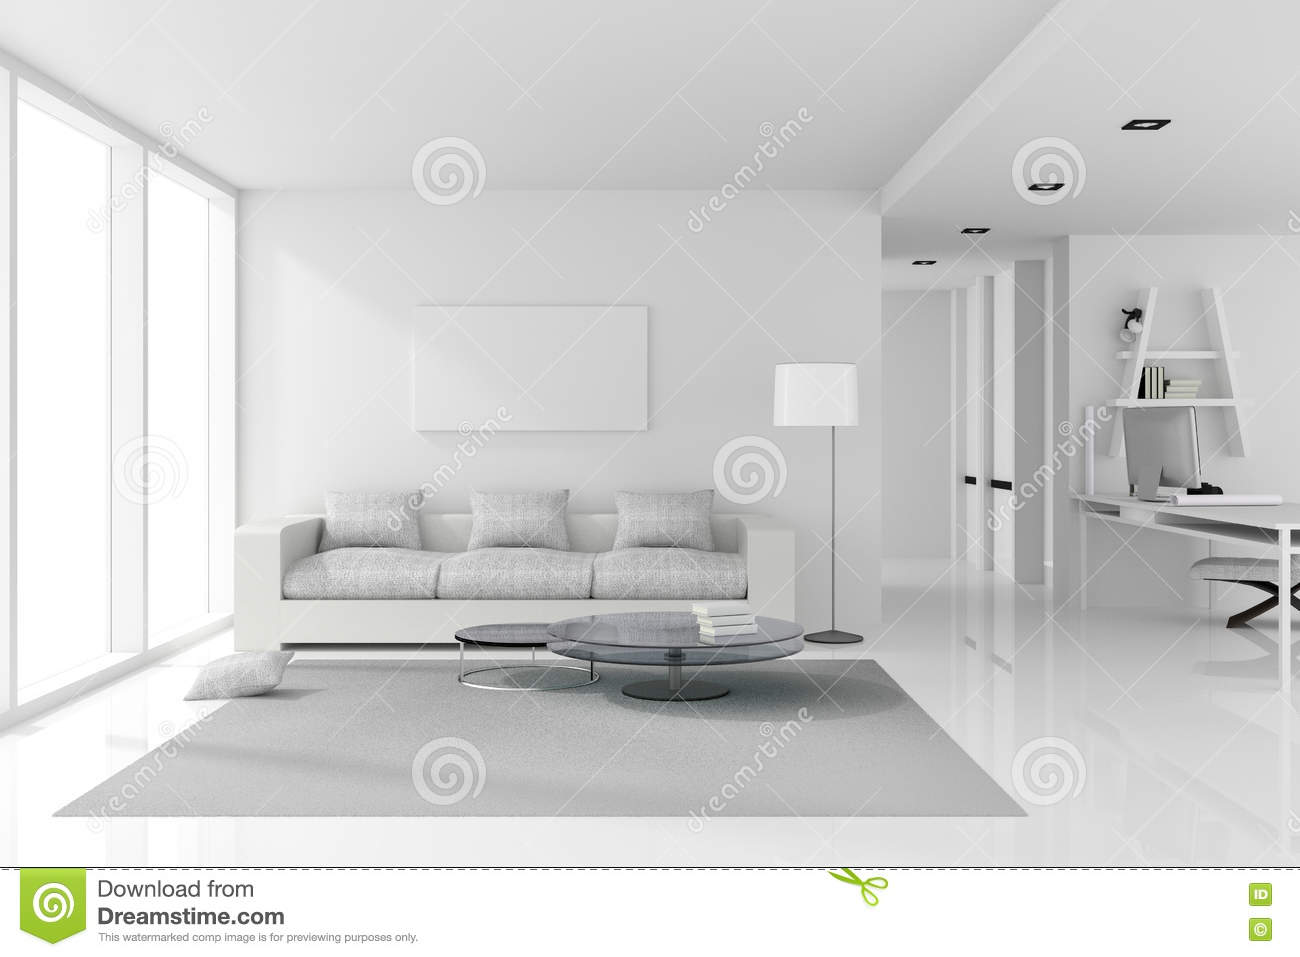 3D Rendering Illustration Of White Interior Design Living Room With Modern Style Furnitureshiny Floor